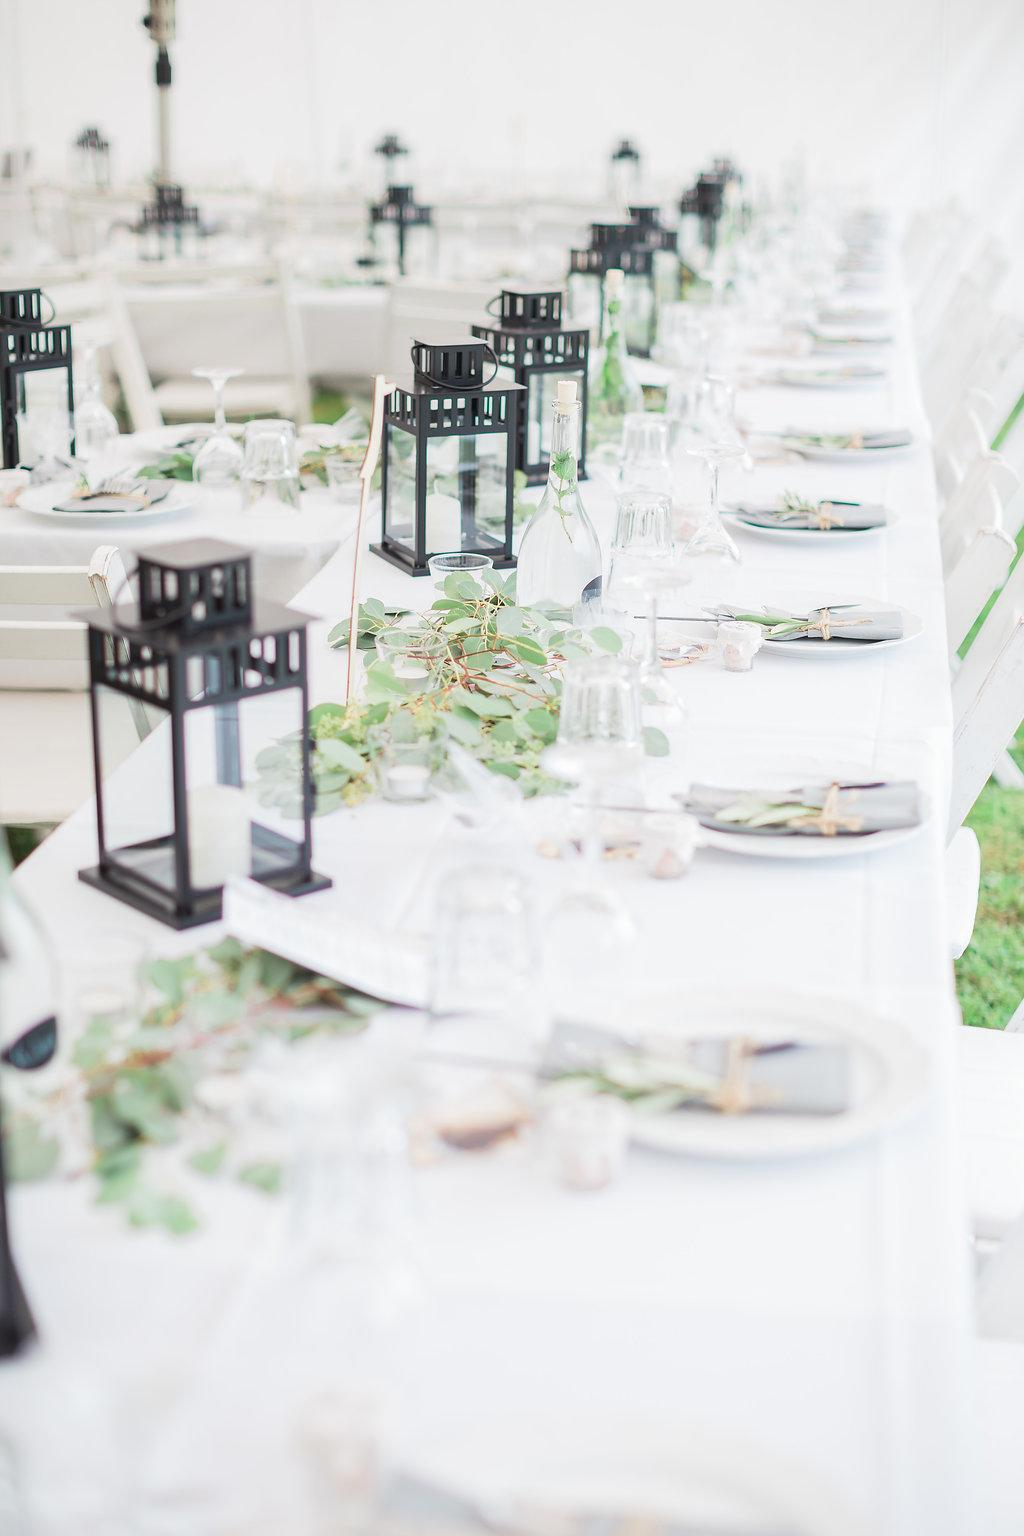 #greenery #wedding #green # black #candles #herbsthochzeit #grau #Grey #White #outdoor